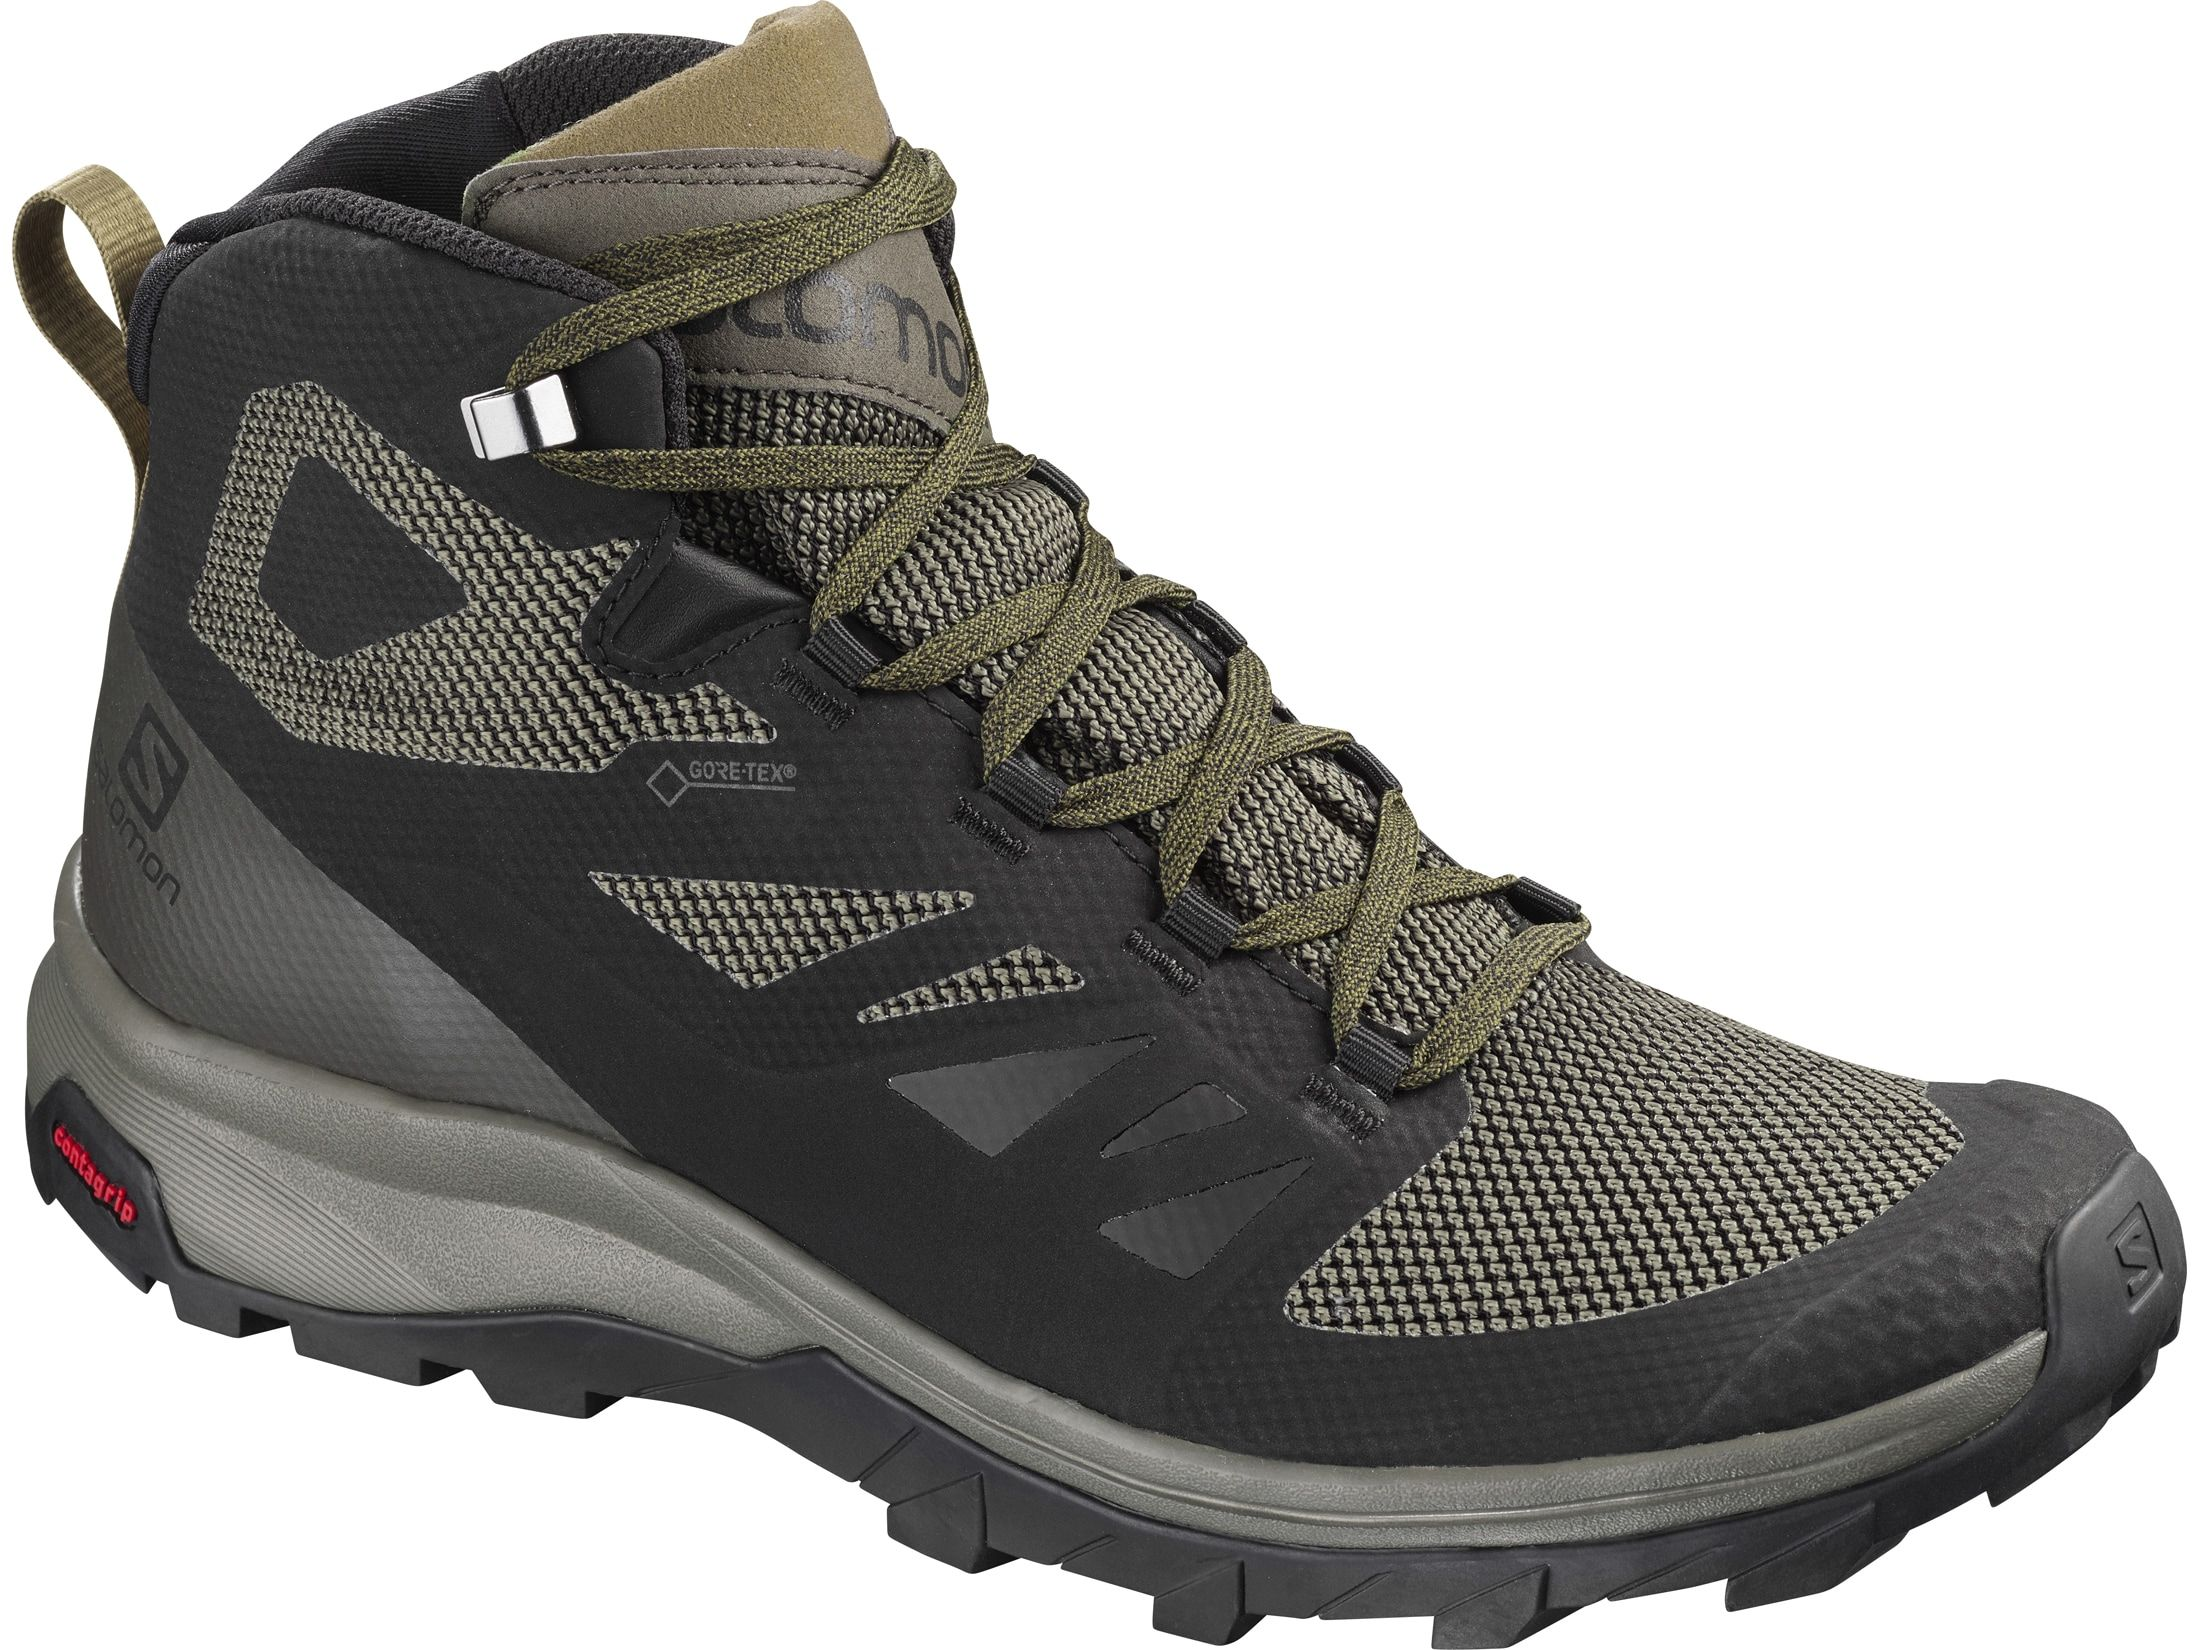 Salomon Outline Mid Gtx 5 Hiking Boots Synthetic Black Beluga Capers Hiking Shoes Mens Mens Hiking Boots Hiking Boots